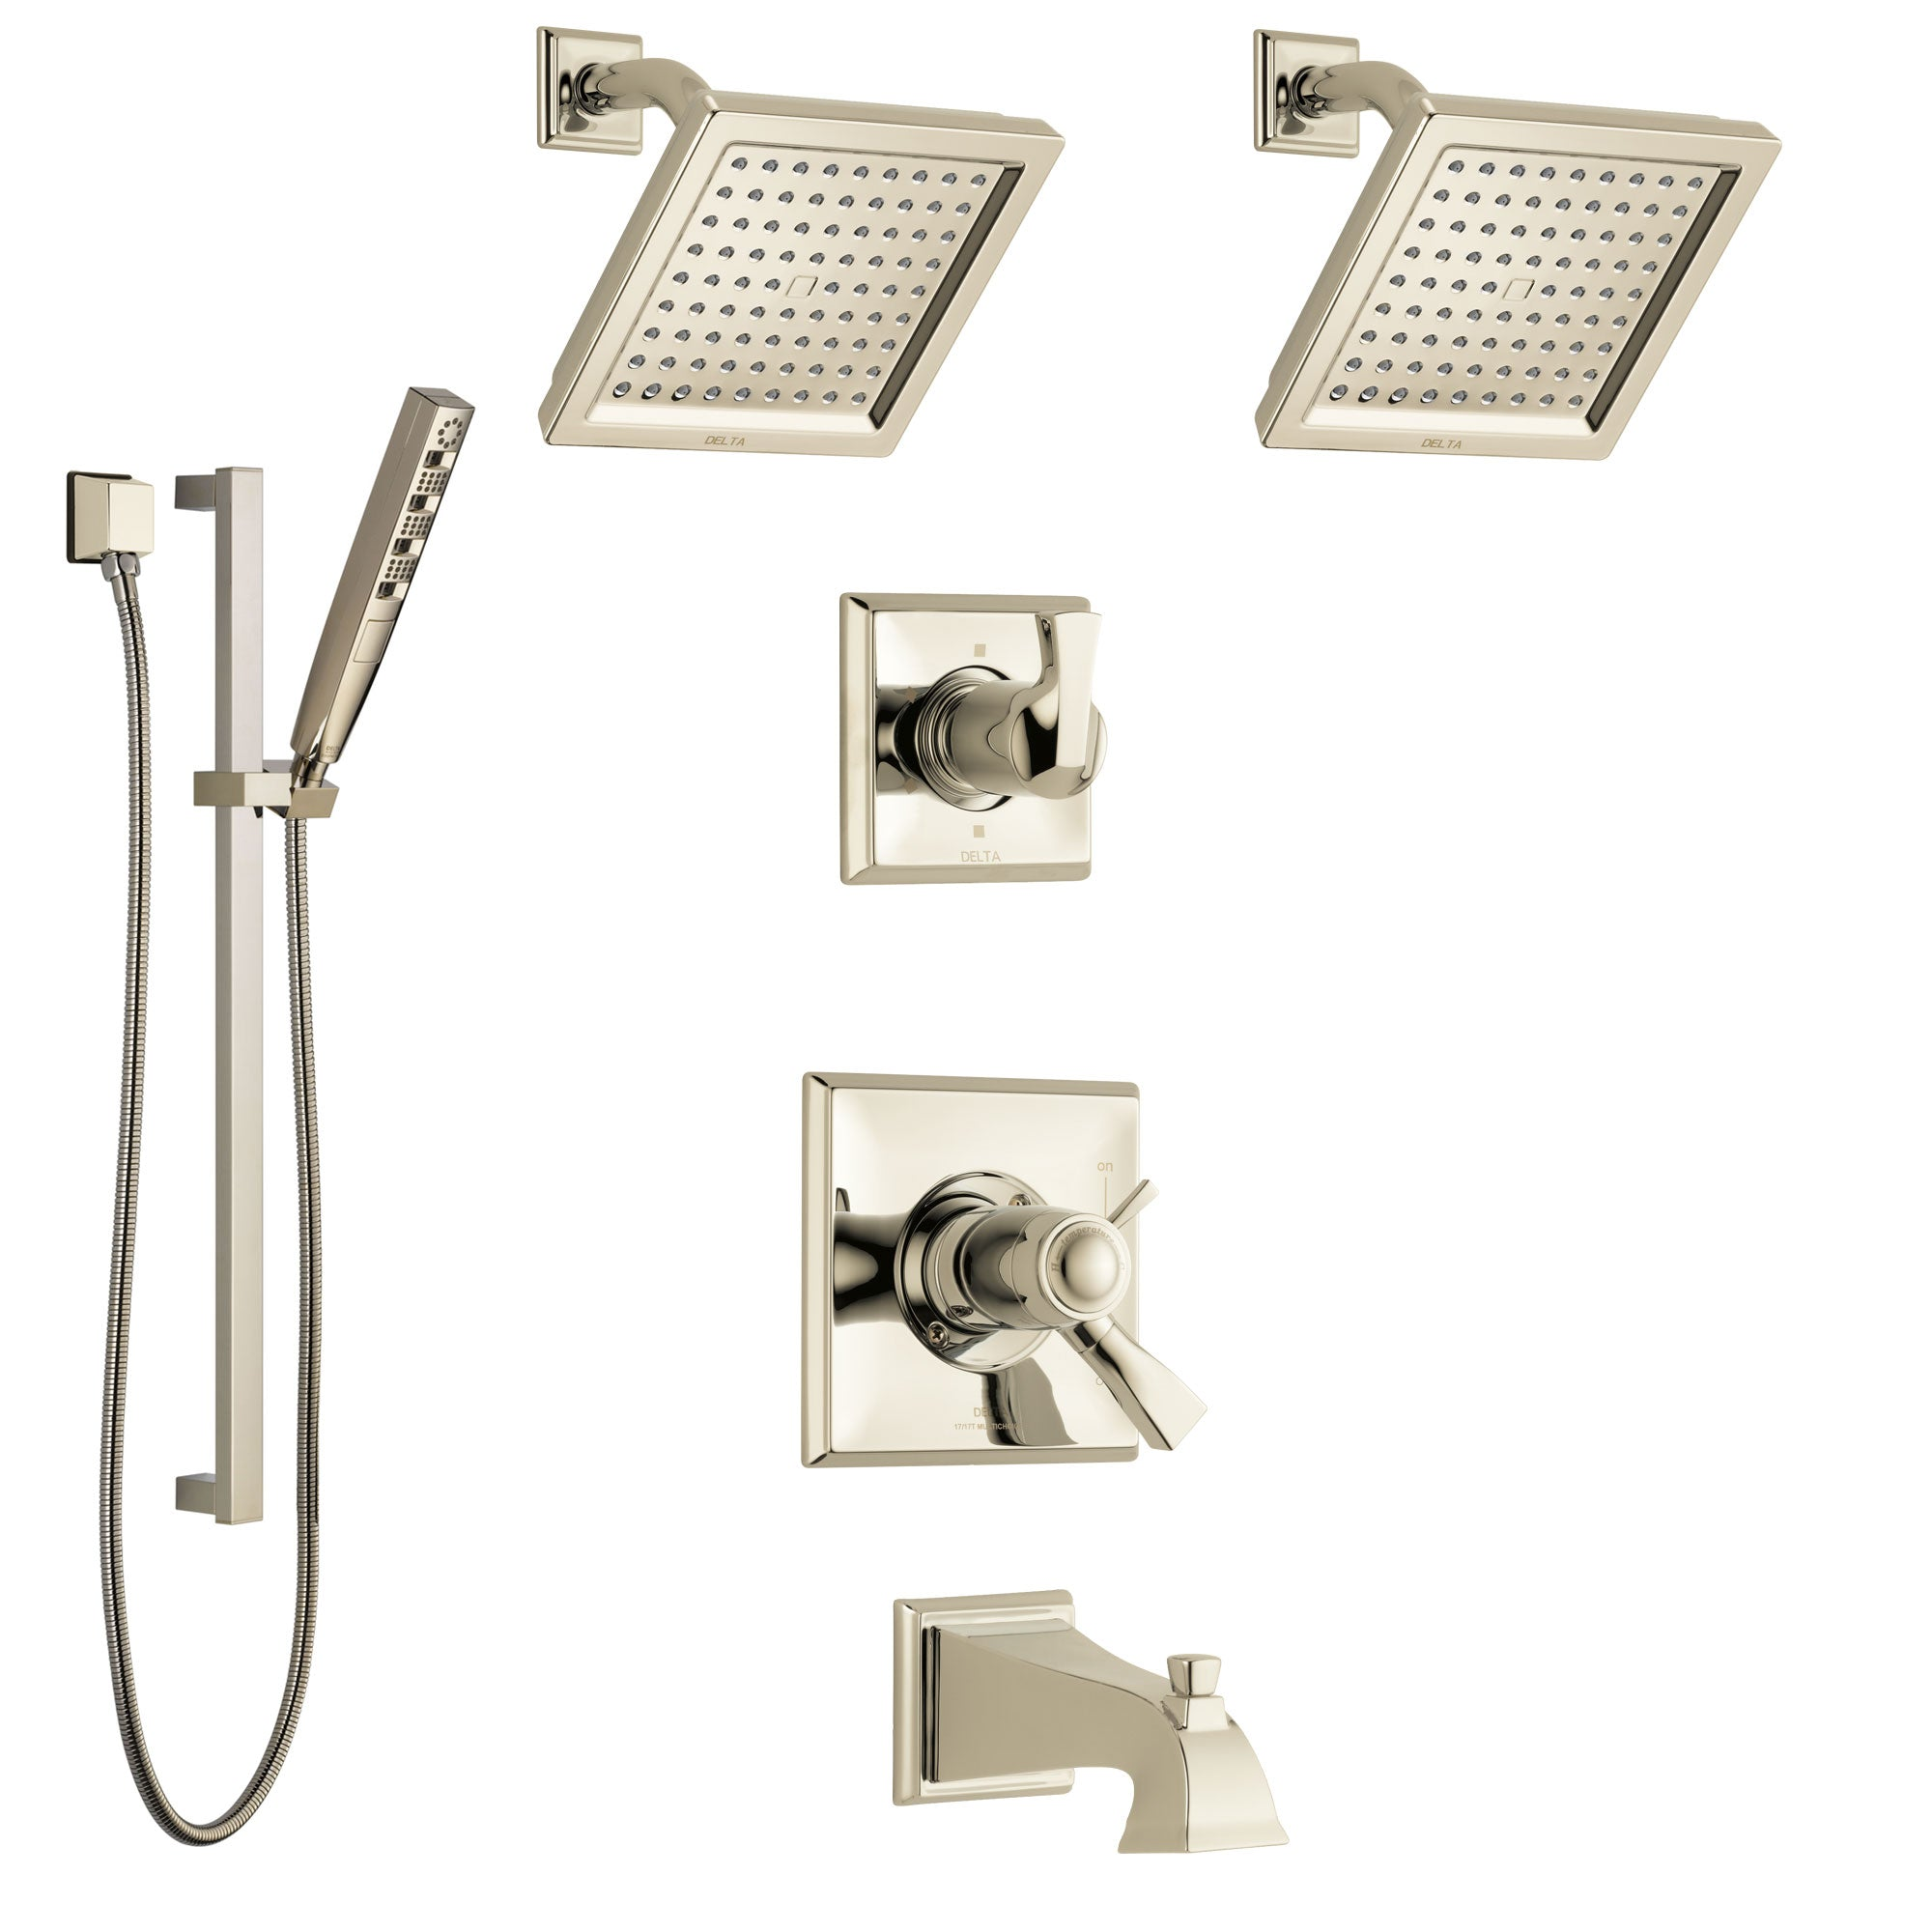 Delta Dryden Polished Nickel Tub and Shower System with Dual Thermostatic Control Handle, 6-Setting Diverter, 2 Showerheads, Hand Shower SS17T4512PN4